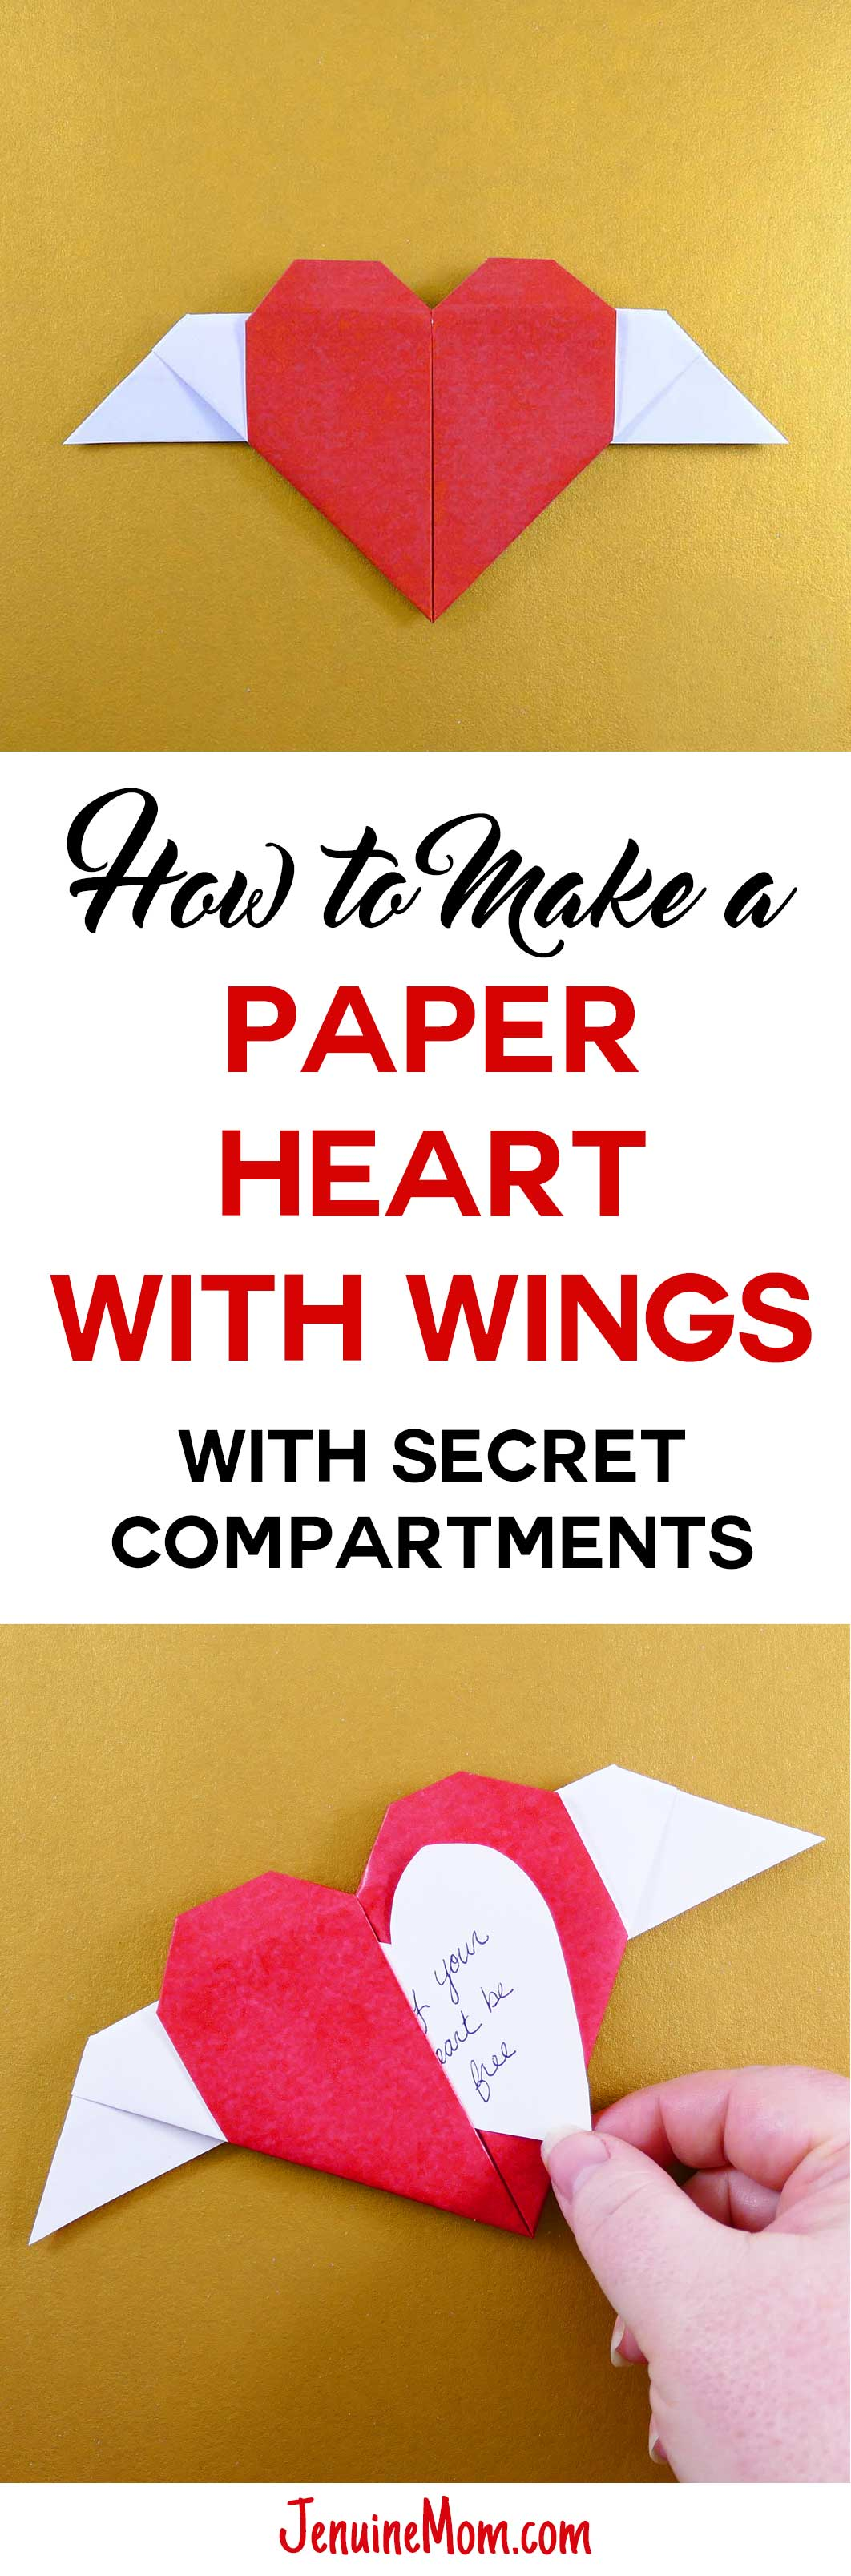 Diy Paper Winged Heart With Hidden Message